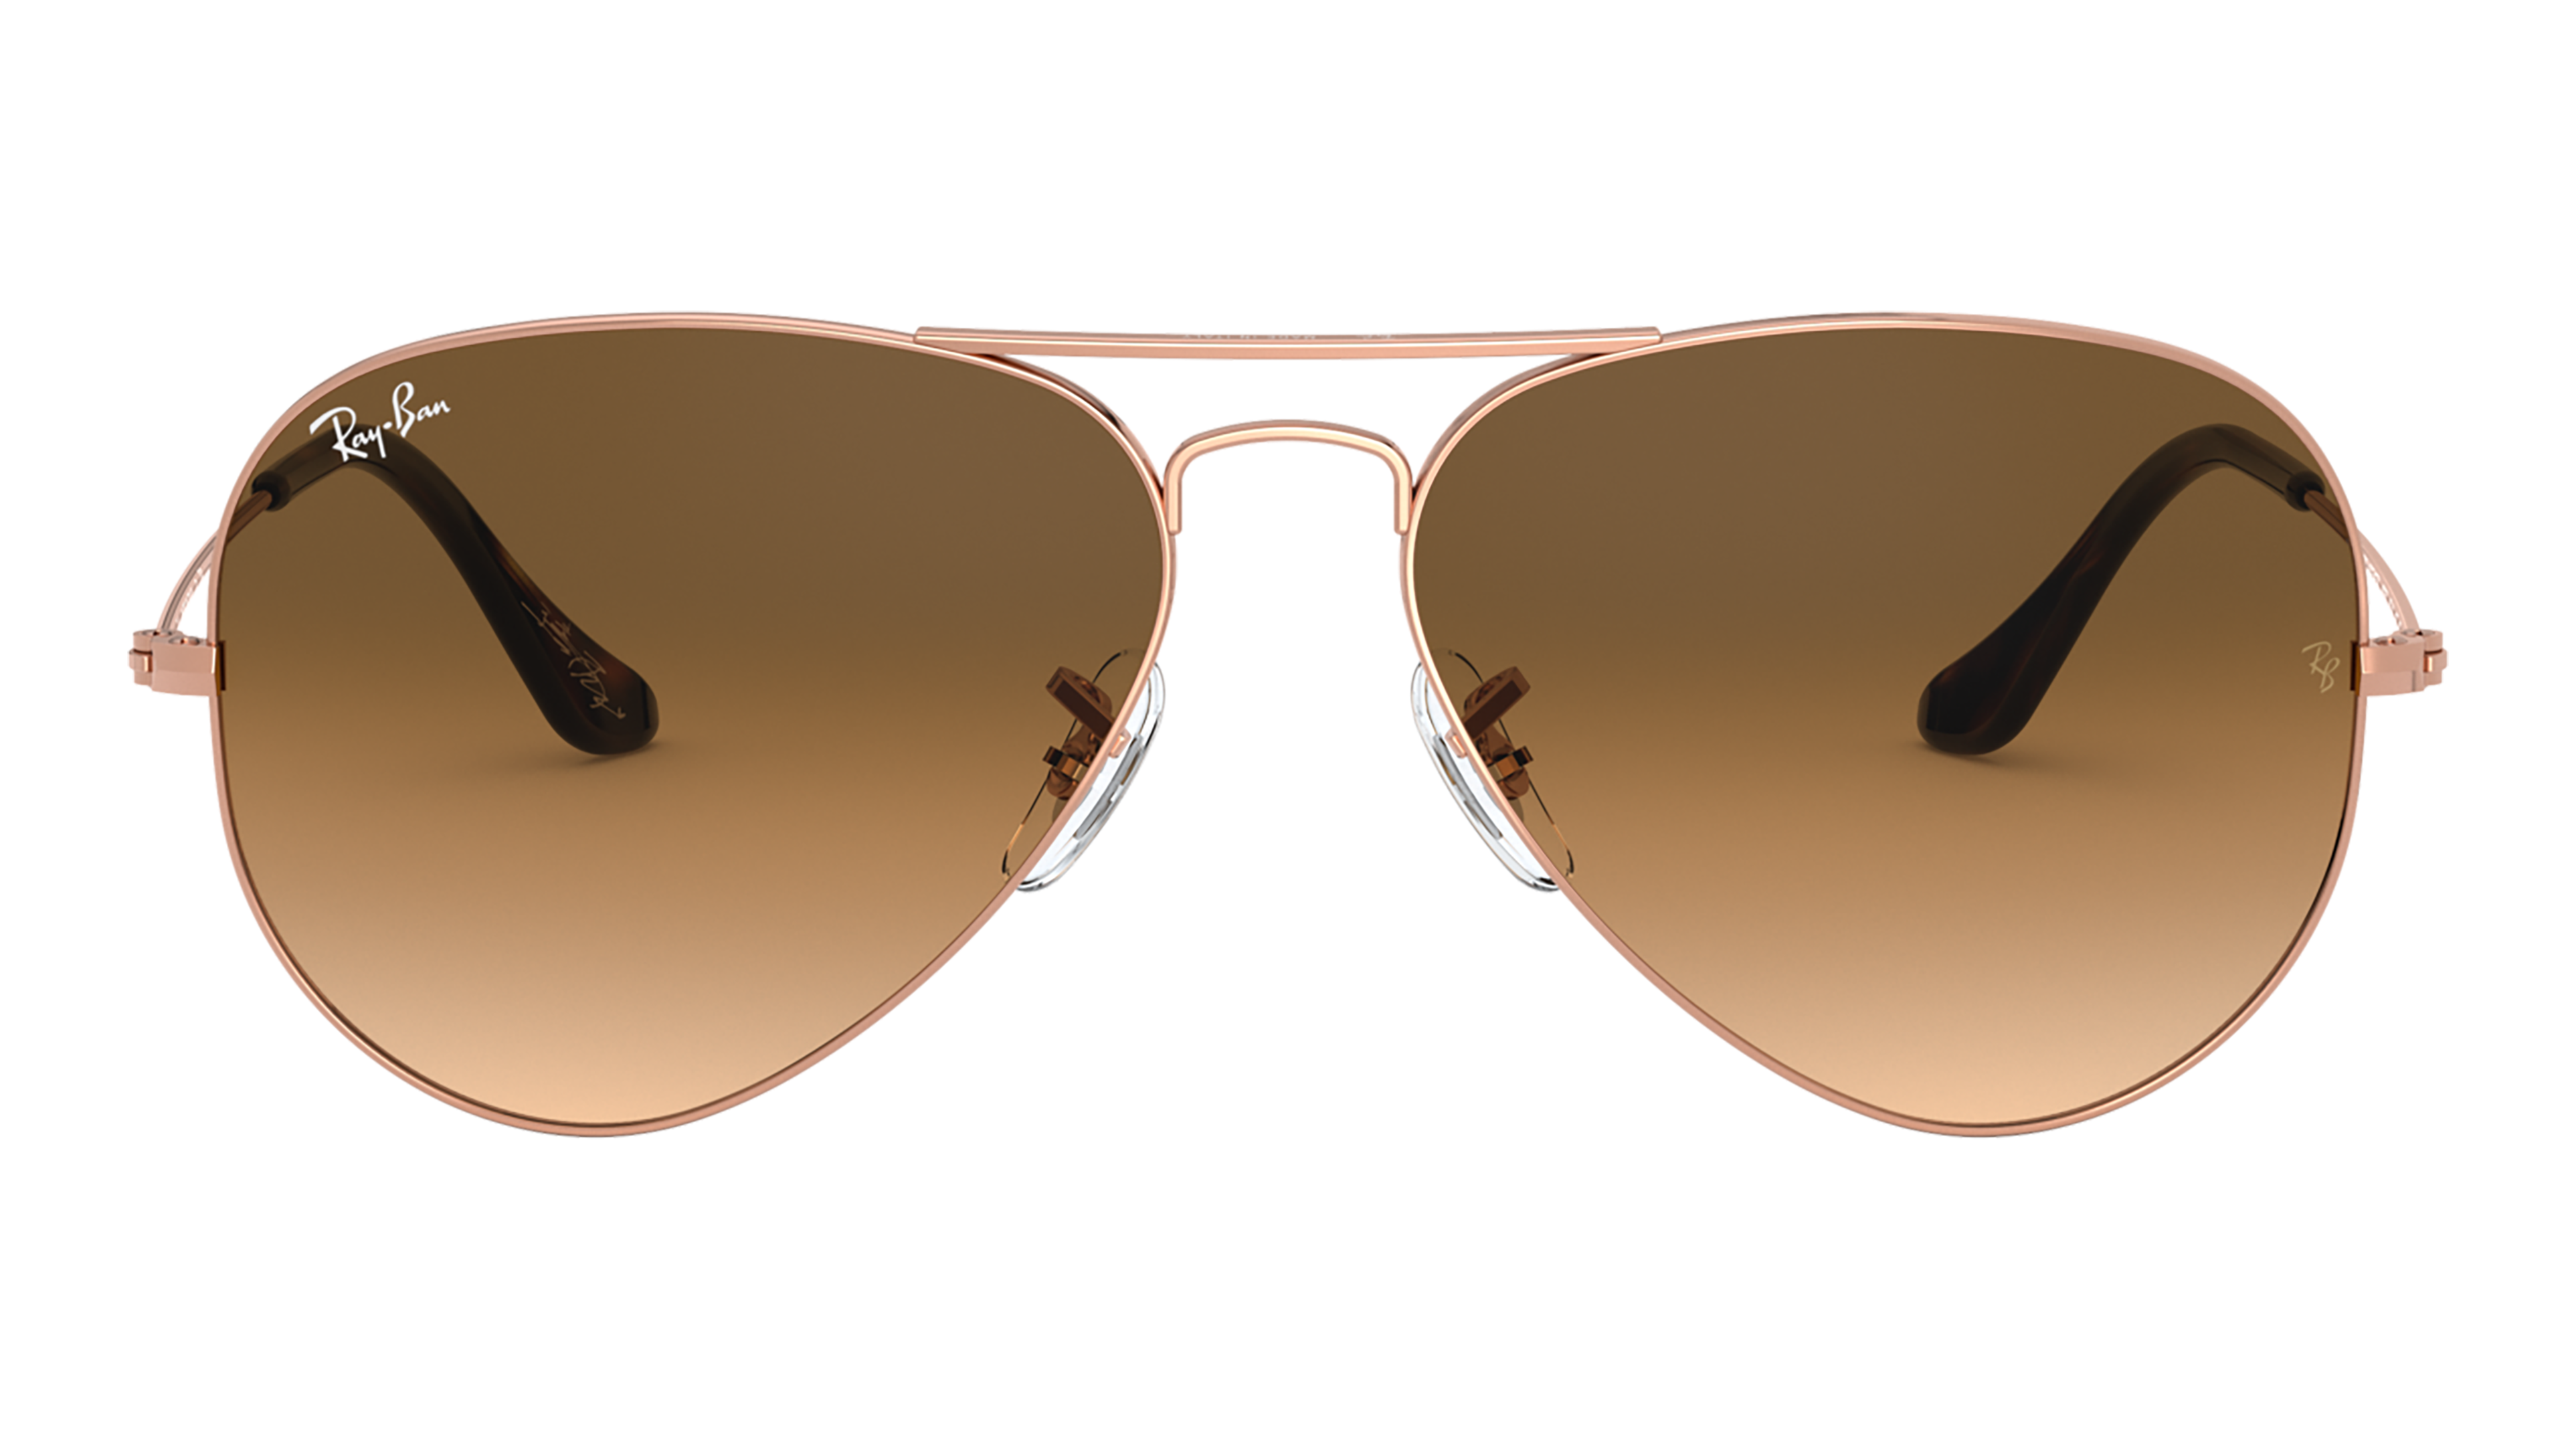 Front Ray-Ban Ray-Ban 0RB3025 903551 62/14 Goud/Bruin